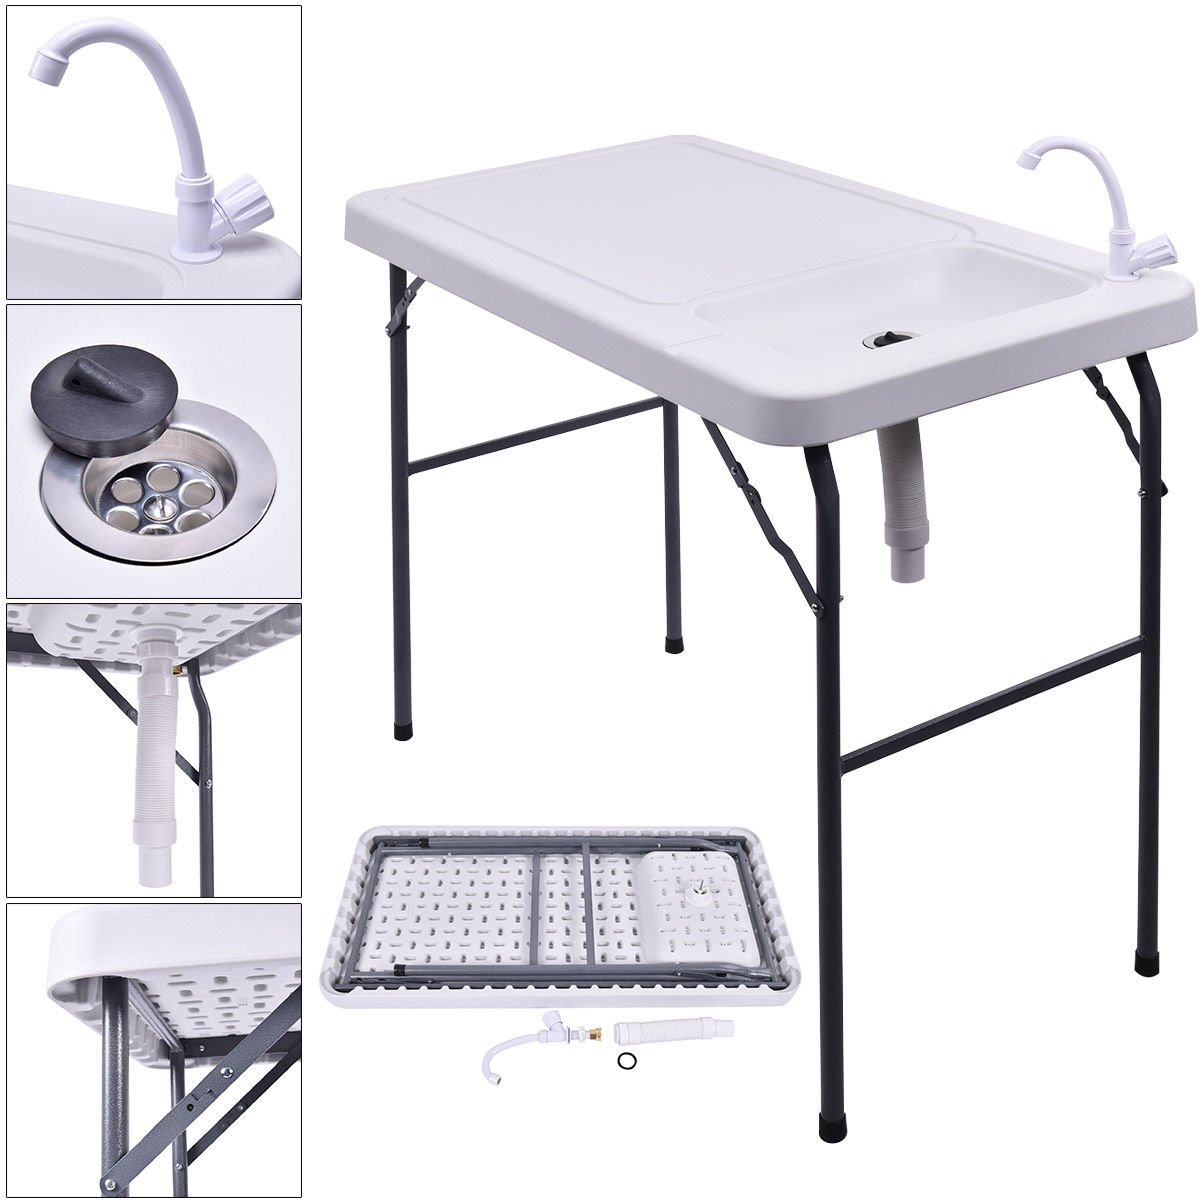 Globe House Products GHP 200-Lbs Capacity HDPE 45''x23.6''x37.4'' Folding Fish Cleaning Table Sink Faucet